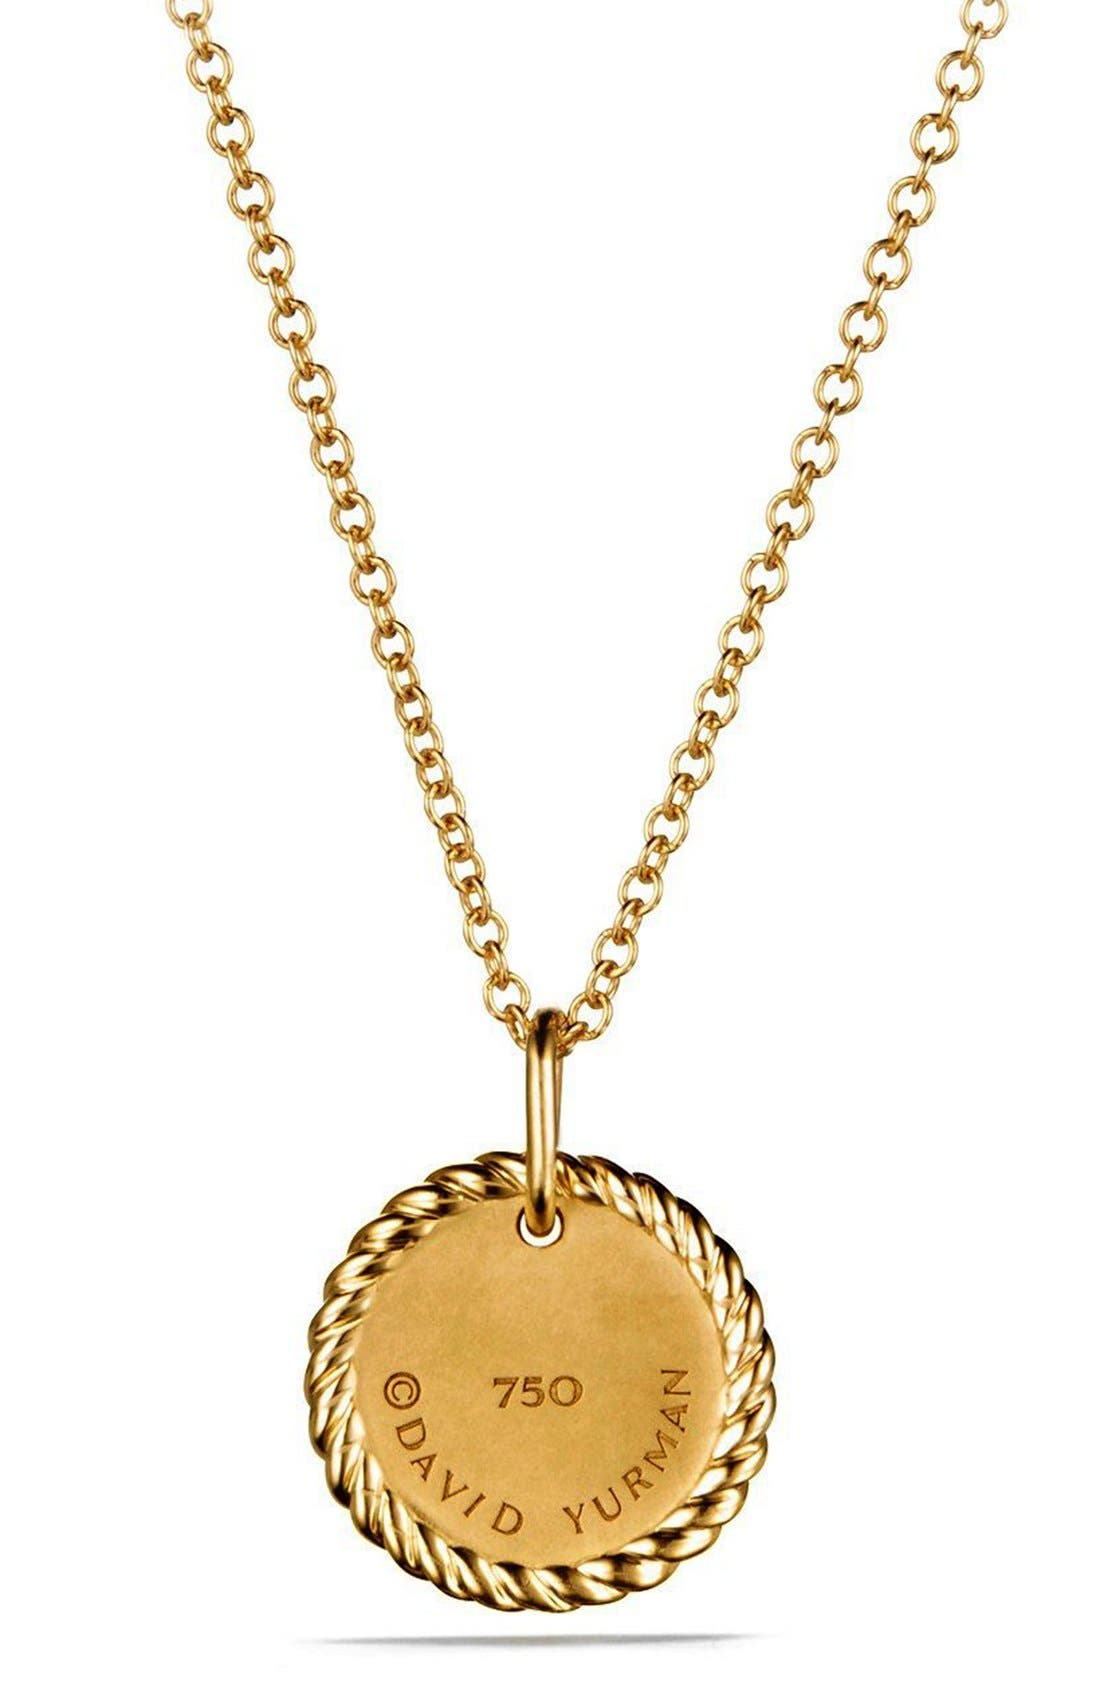 'Cable Collectibles' Pavé Charm with Diamonds in Gold,                             Alternate thumbnail 8, color,                             GOLD